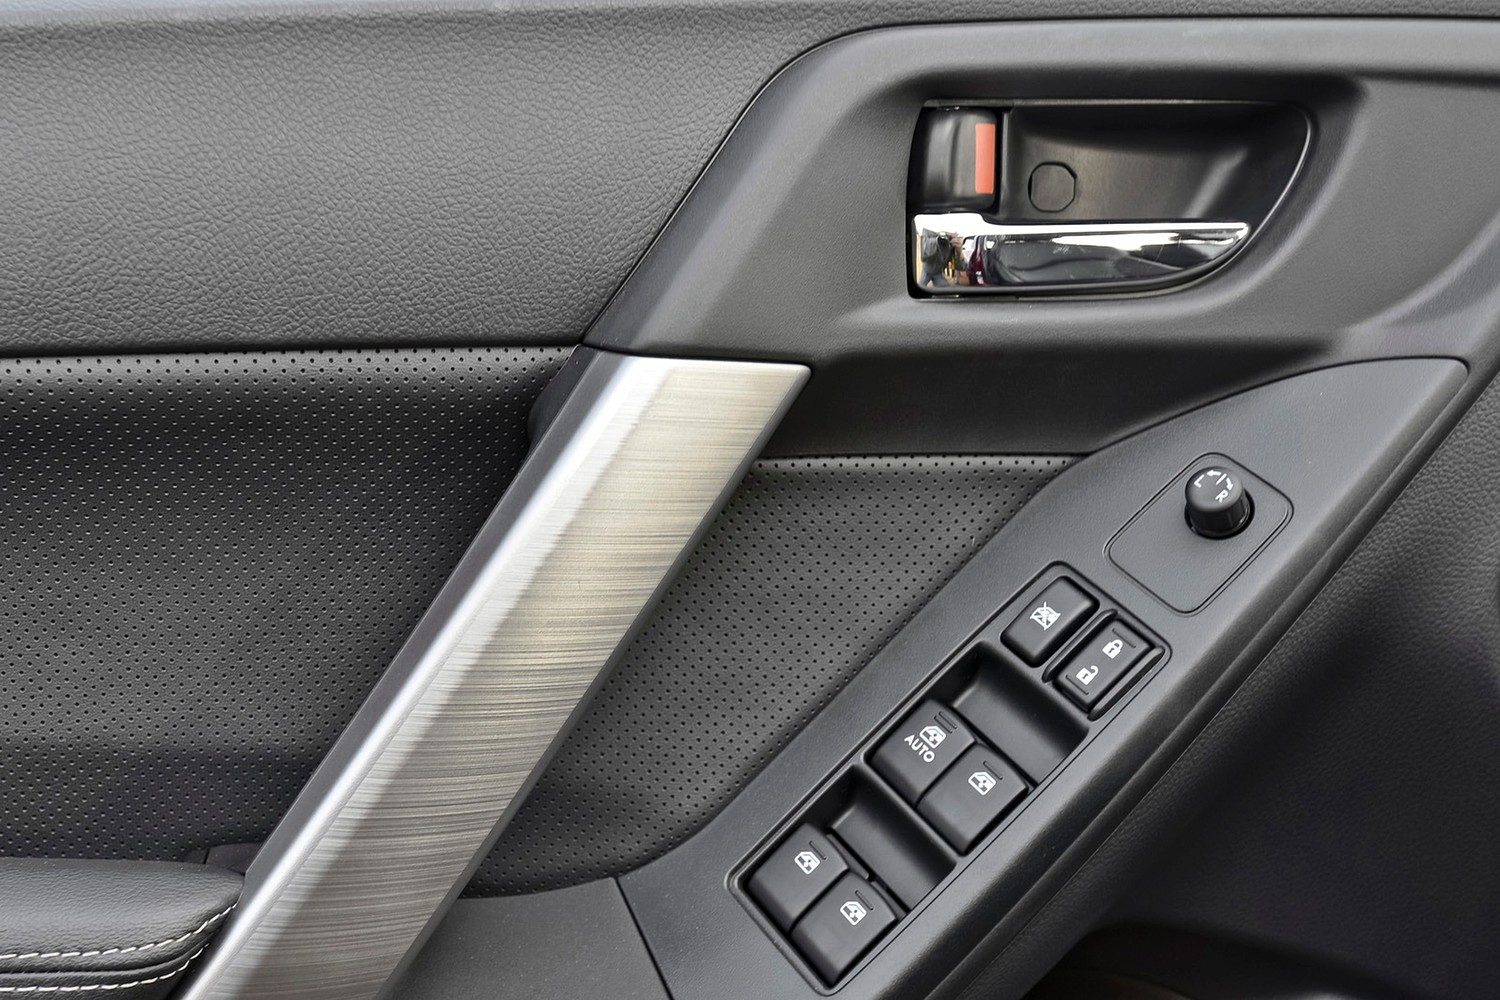 2015 Subaru Forester 2.5i Limited PZEV 4dr SUV Interior Detail